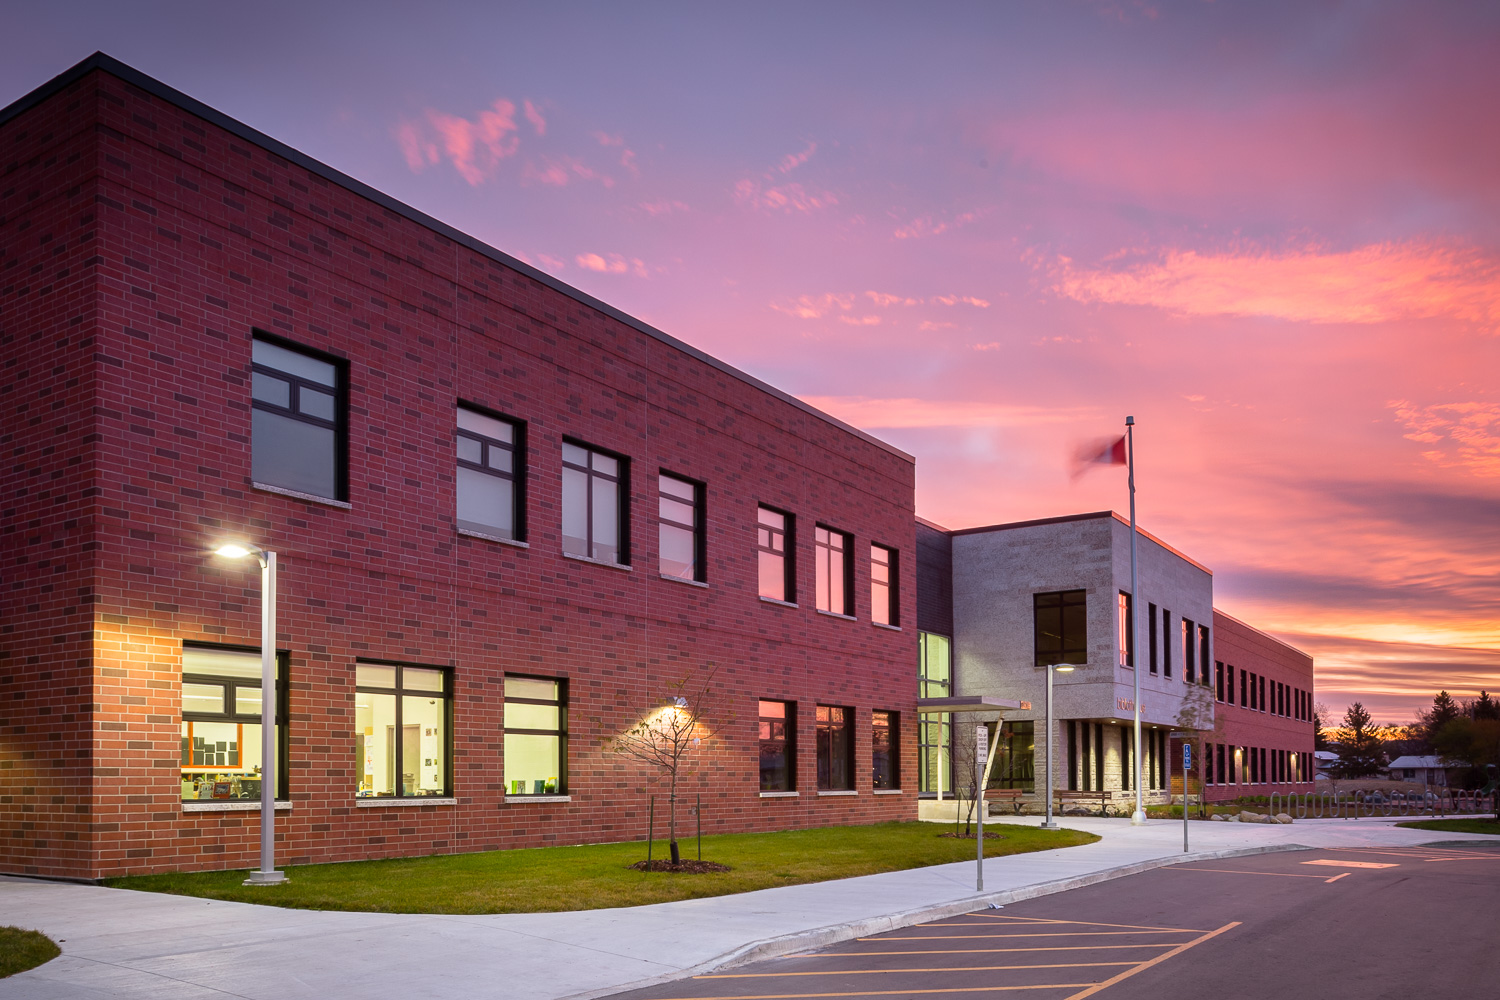 Ecole Rivière Rouge Elementary, exterior photo of building at sunrise / Photo:  Lindsay Reid